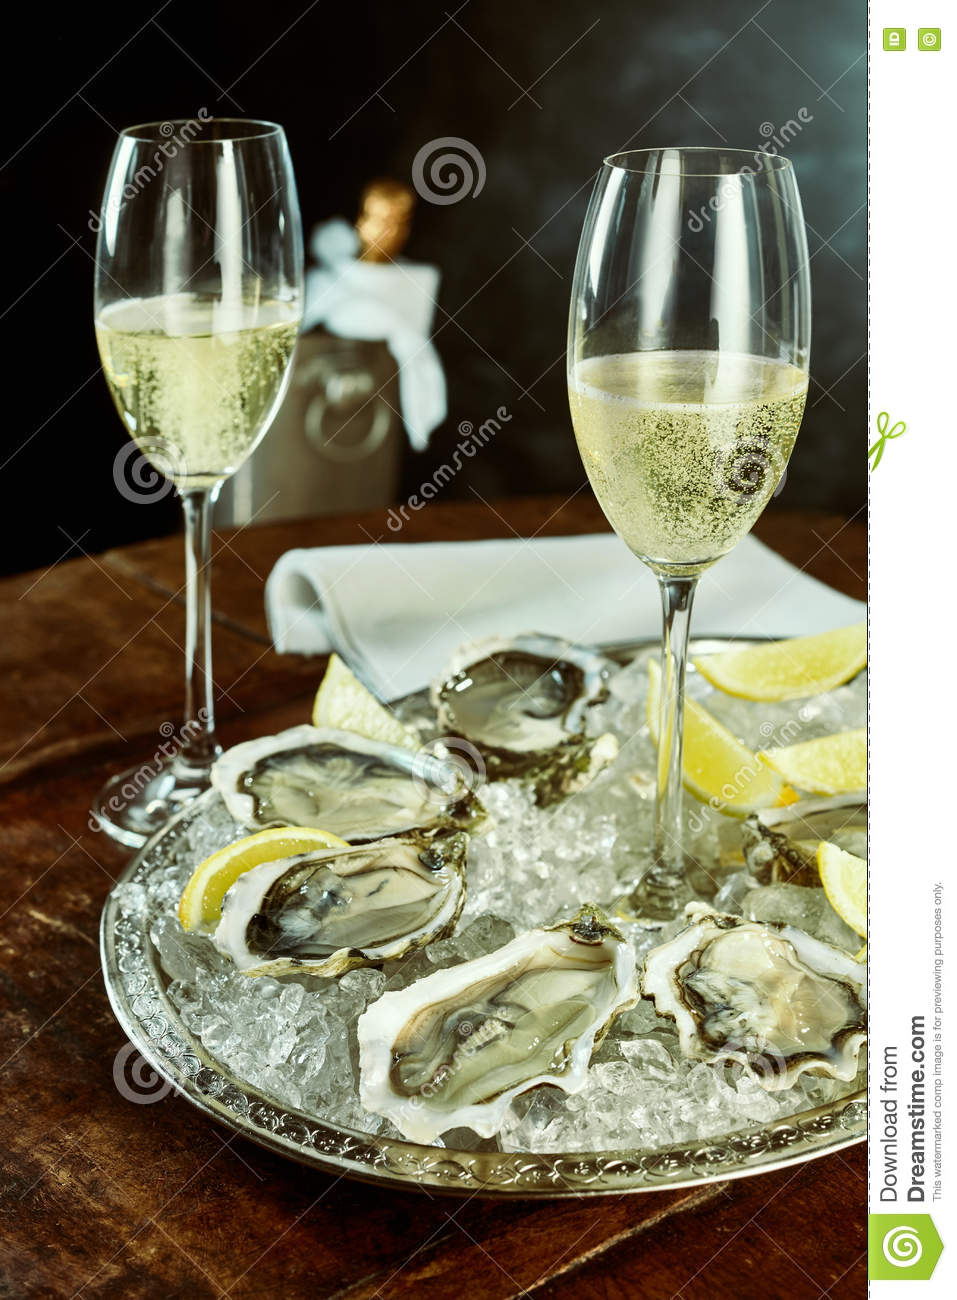 Glasses of champagne and oysters on table